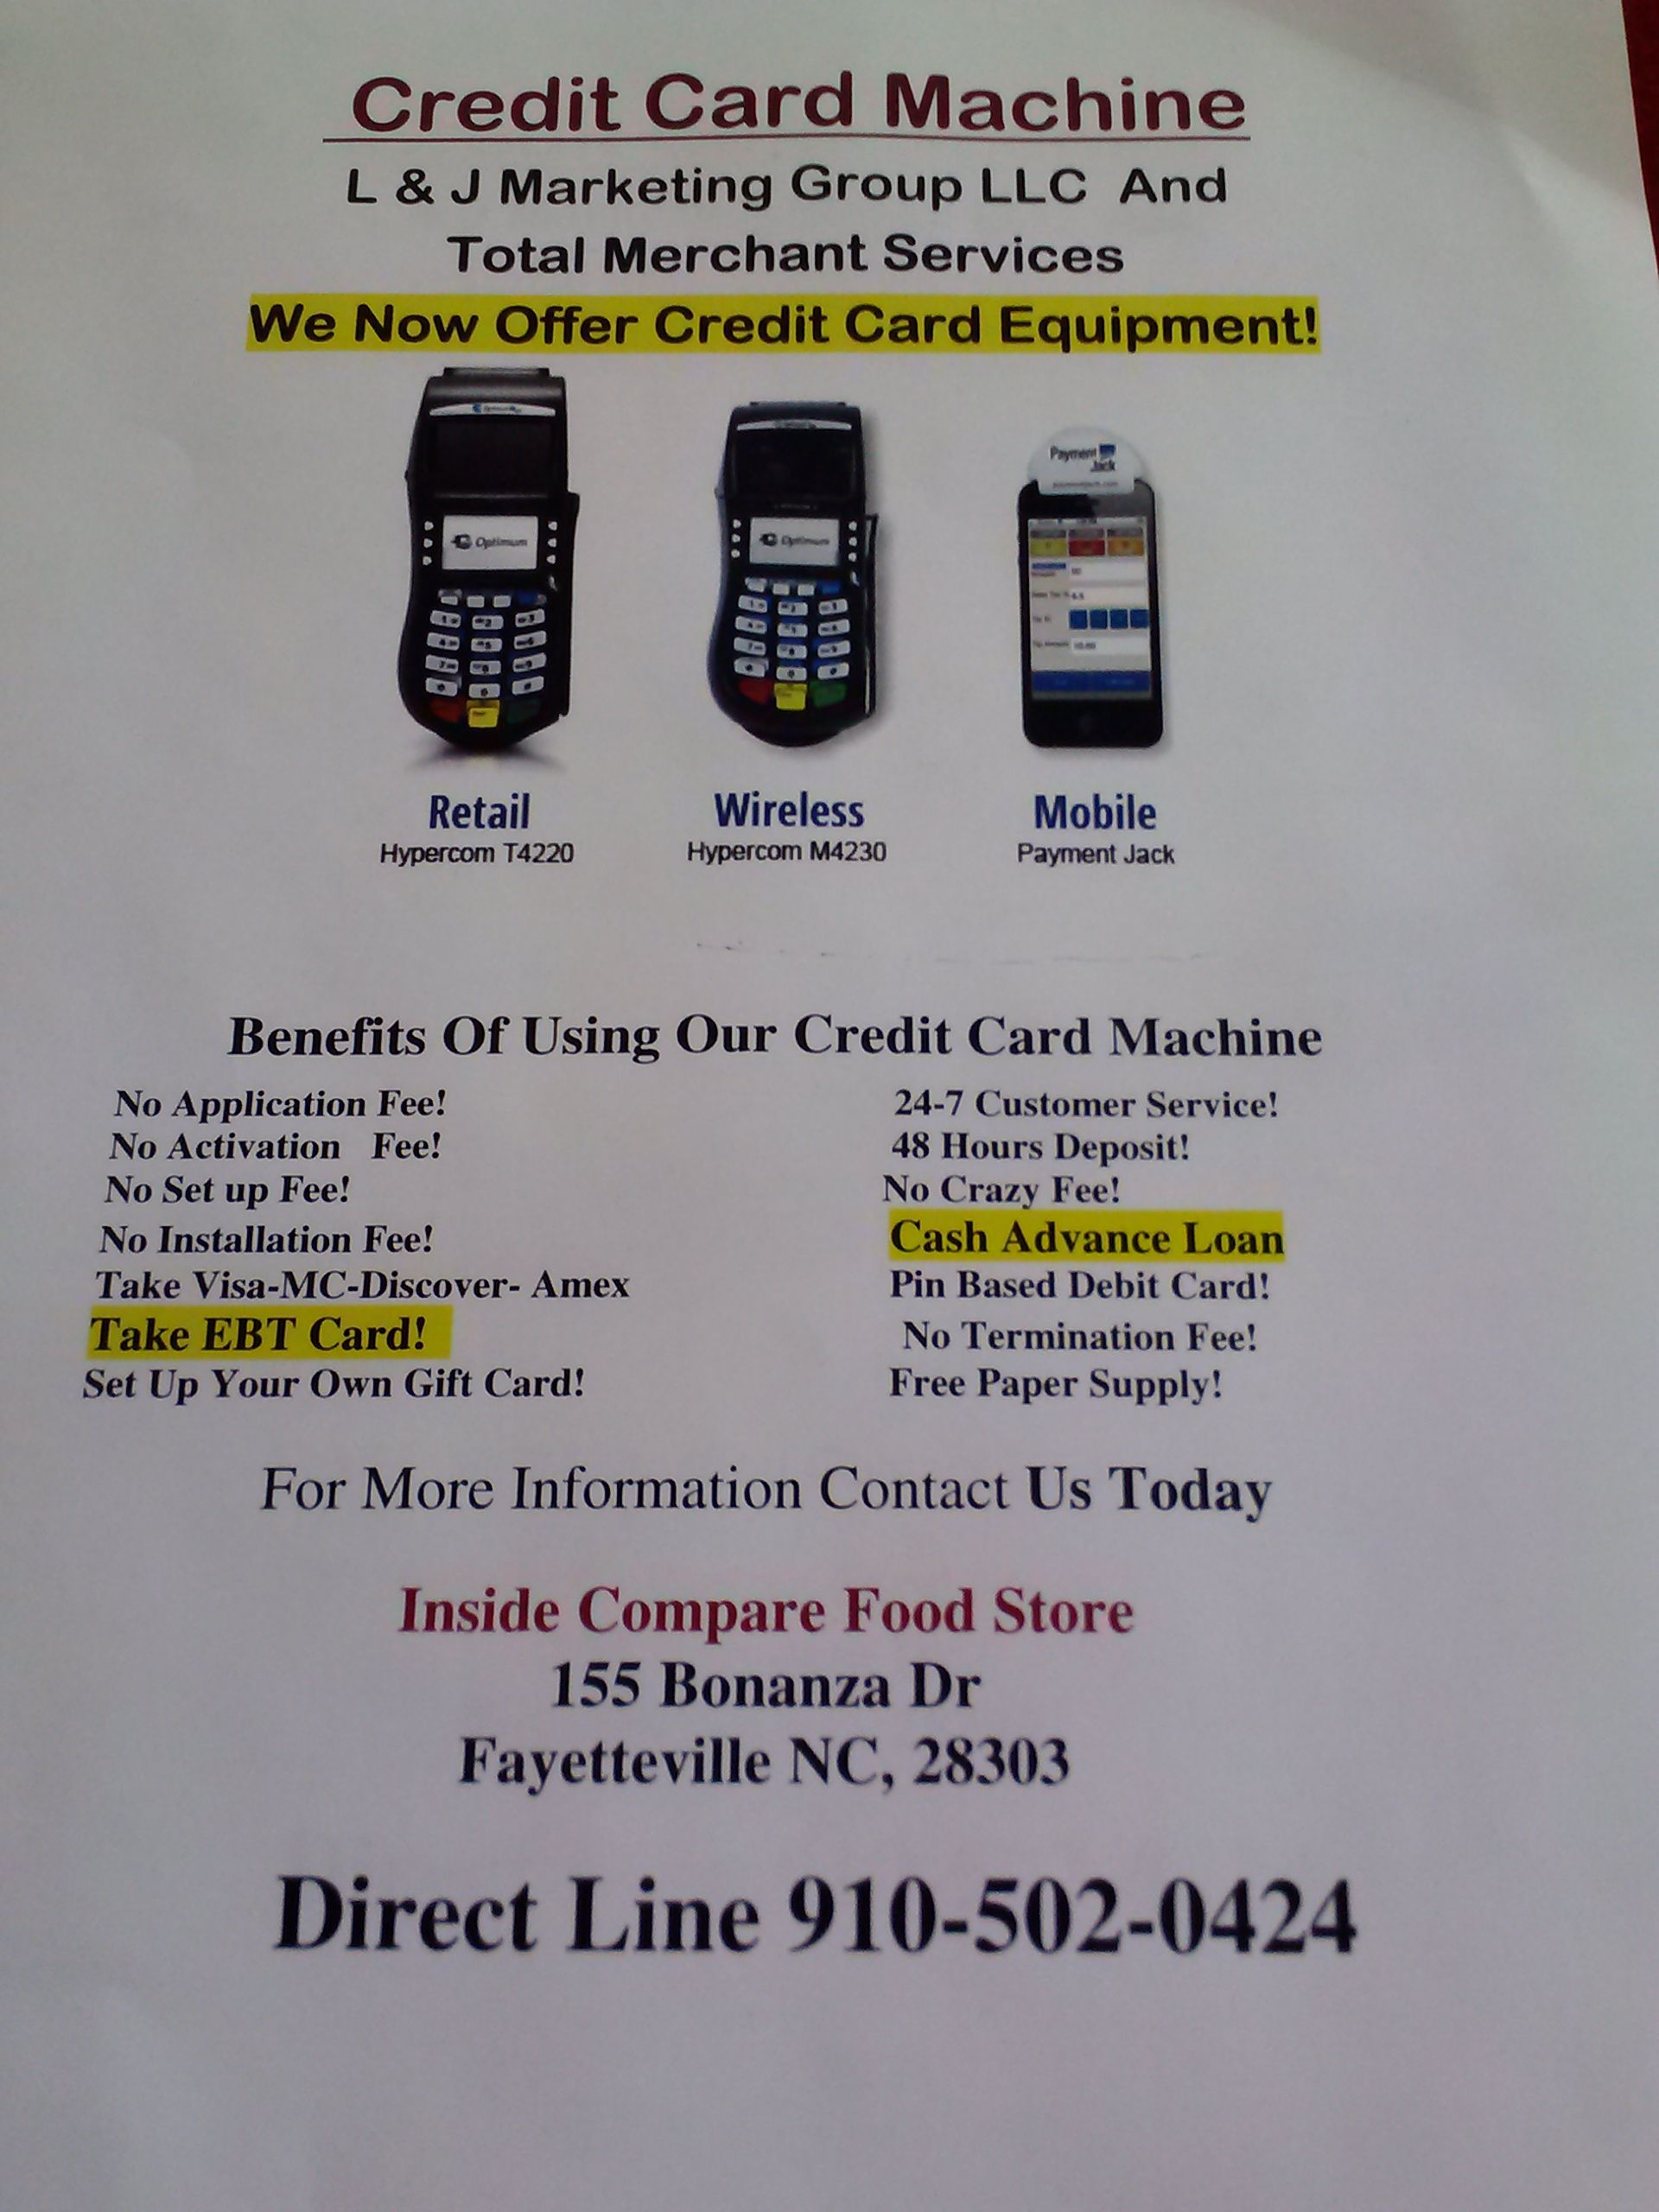 Buying A Credit Card Machine For A Business